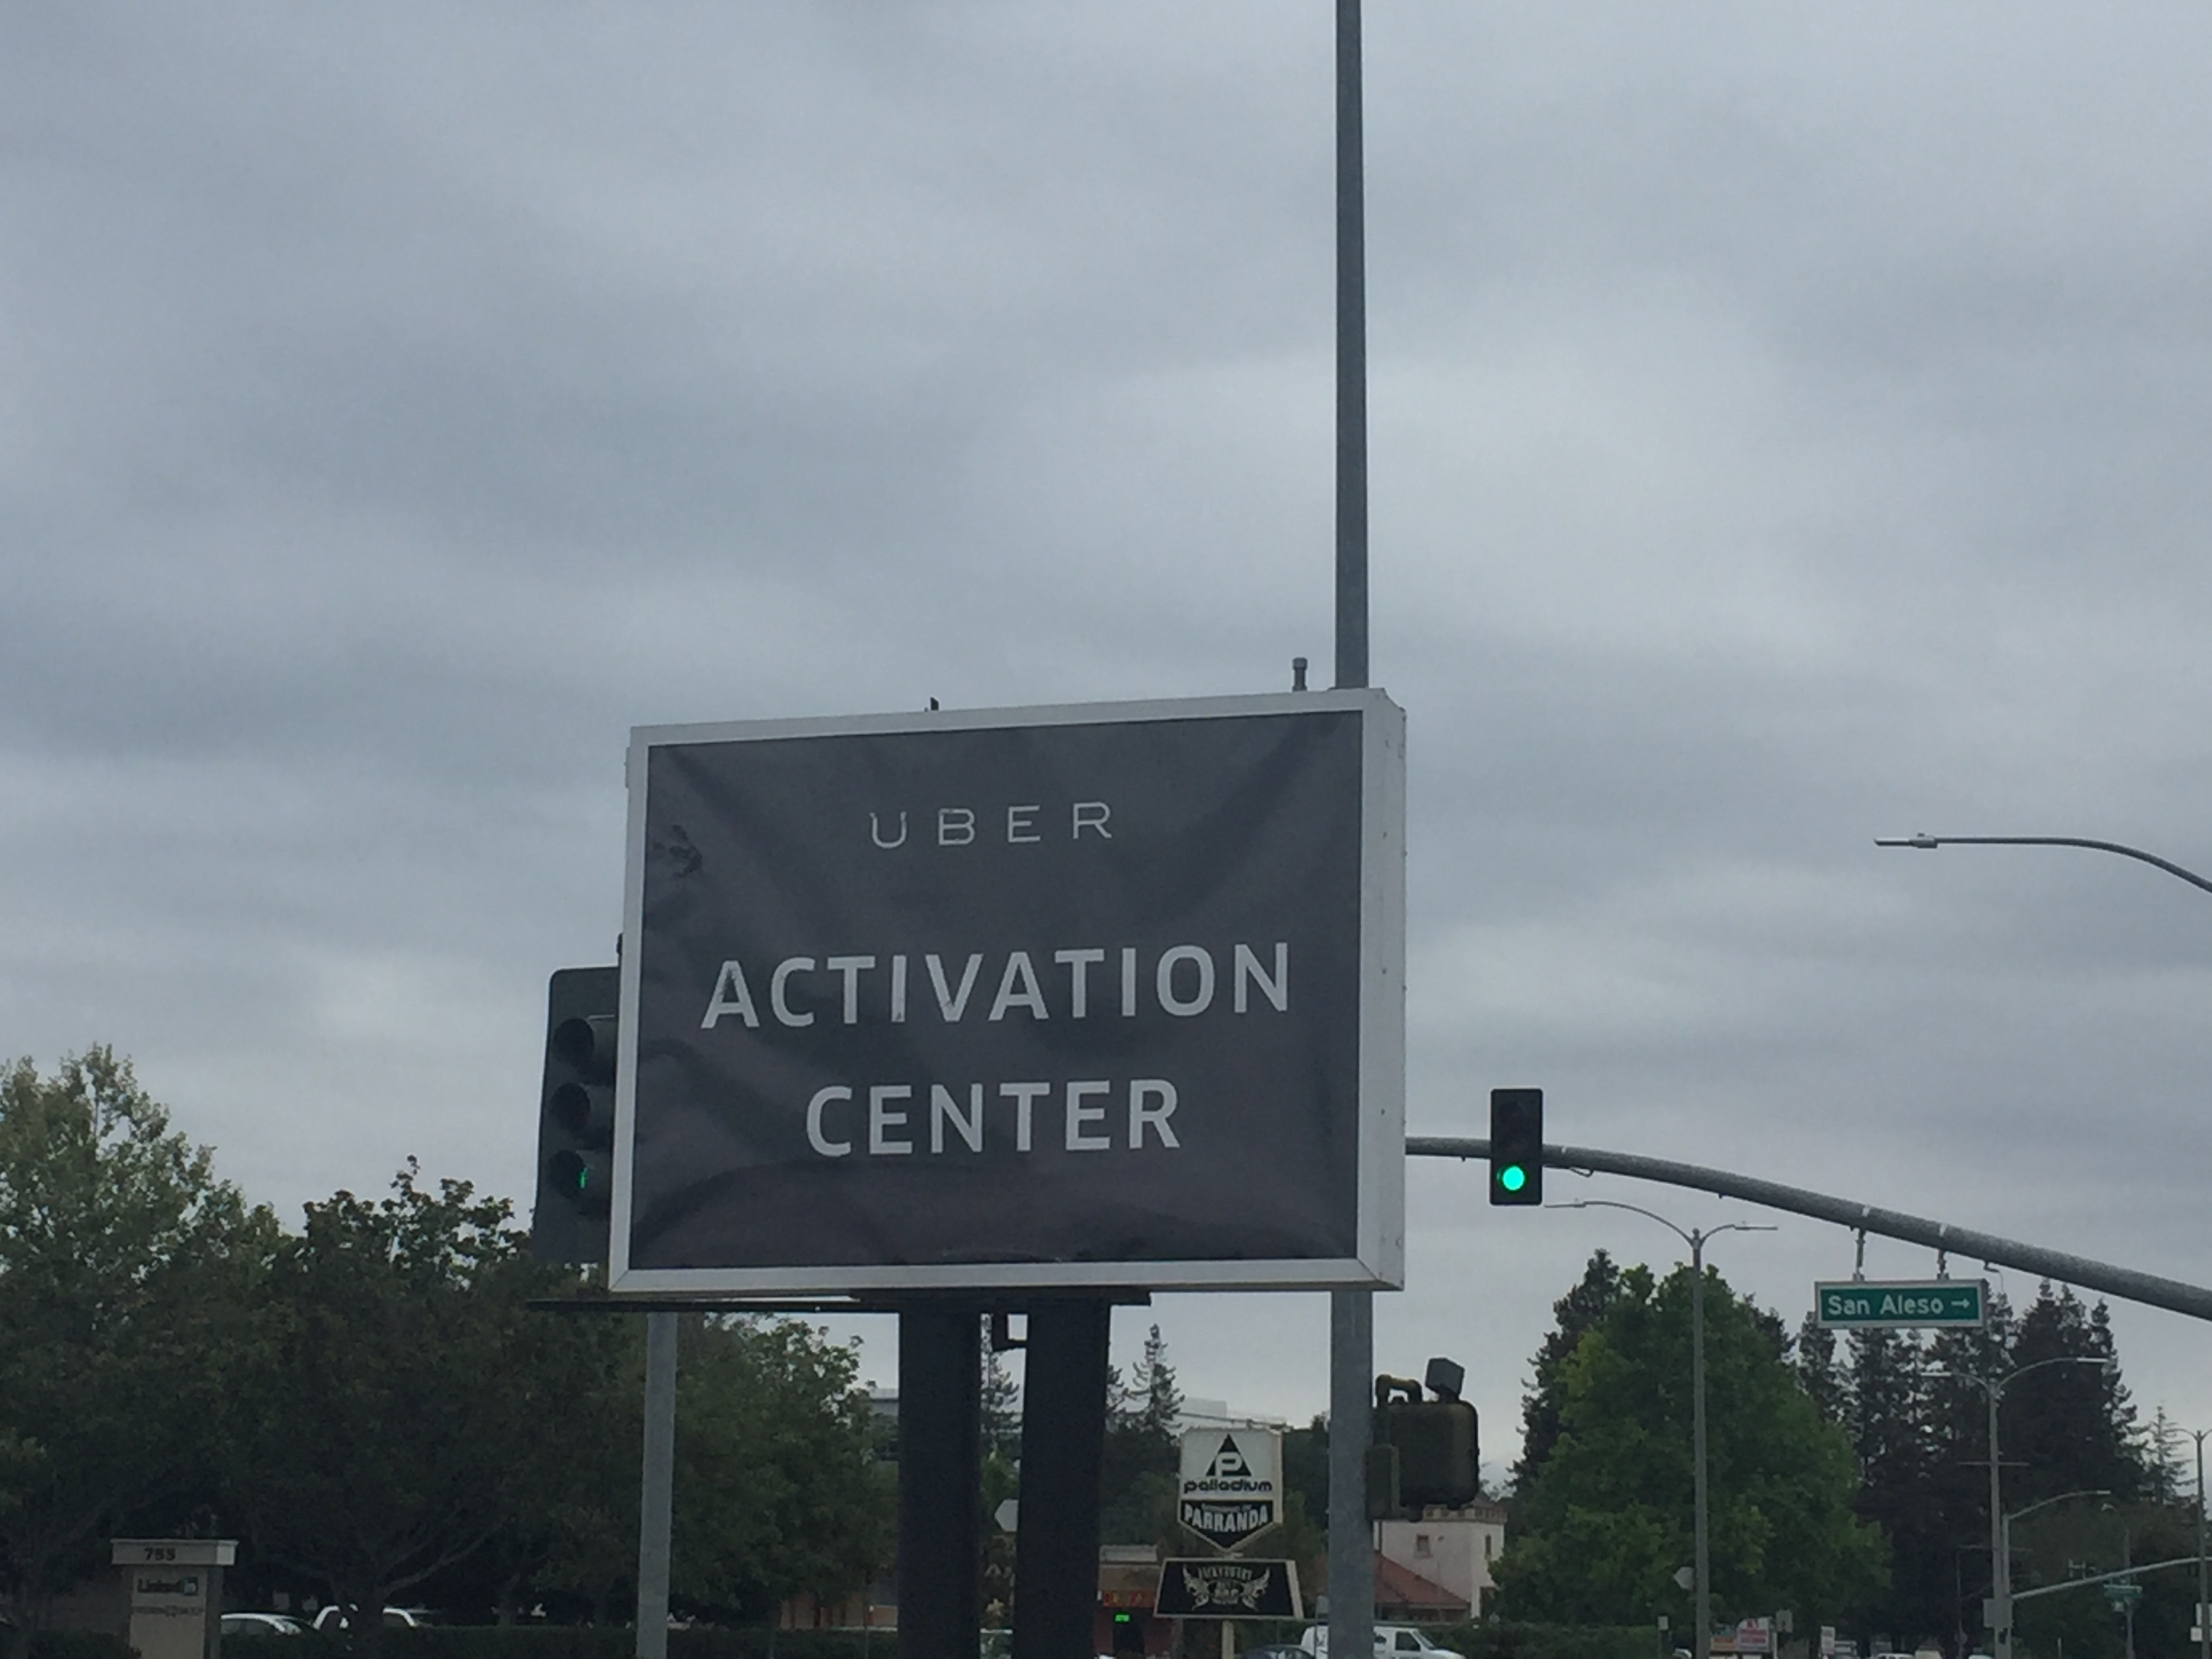 Uber_activation center